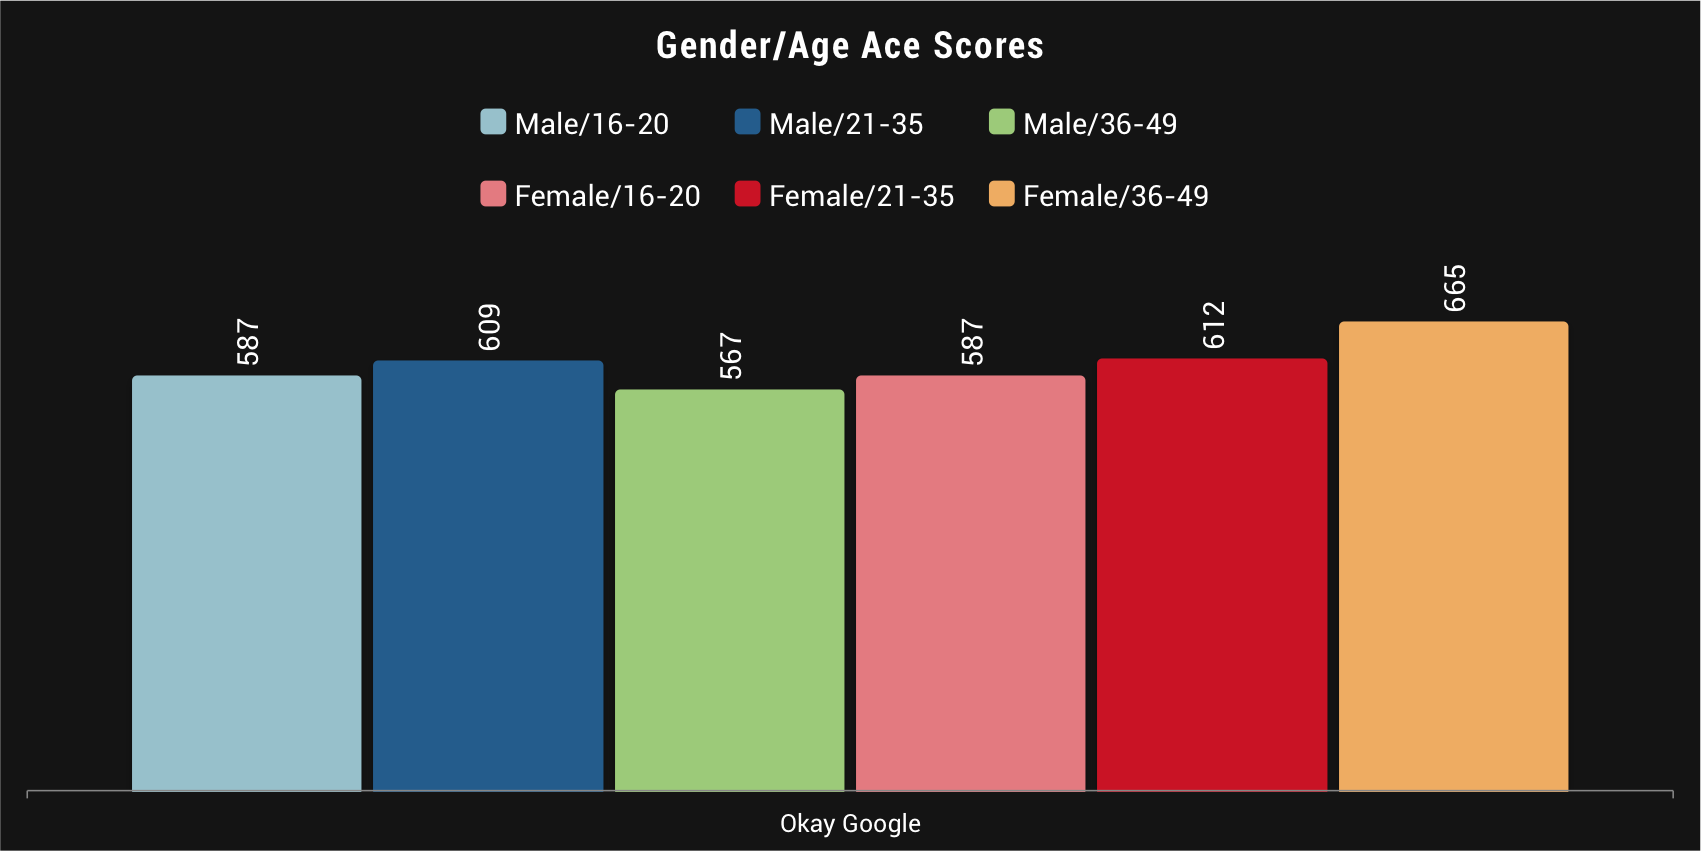 While the ad performed above norm across all gender/age breaks, women ...